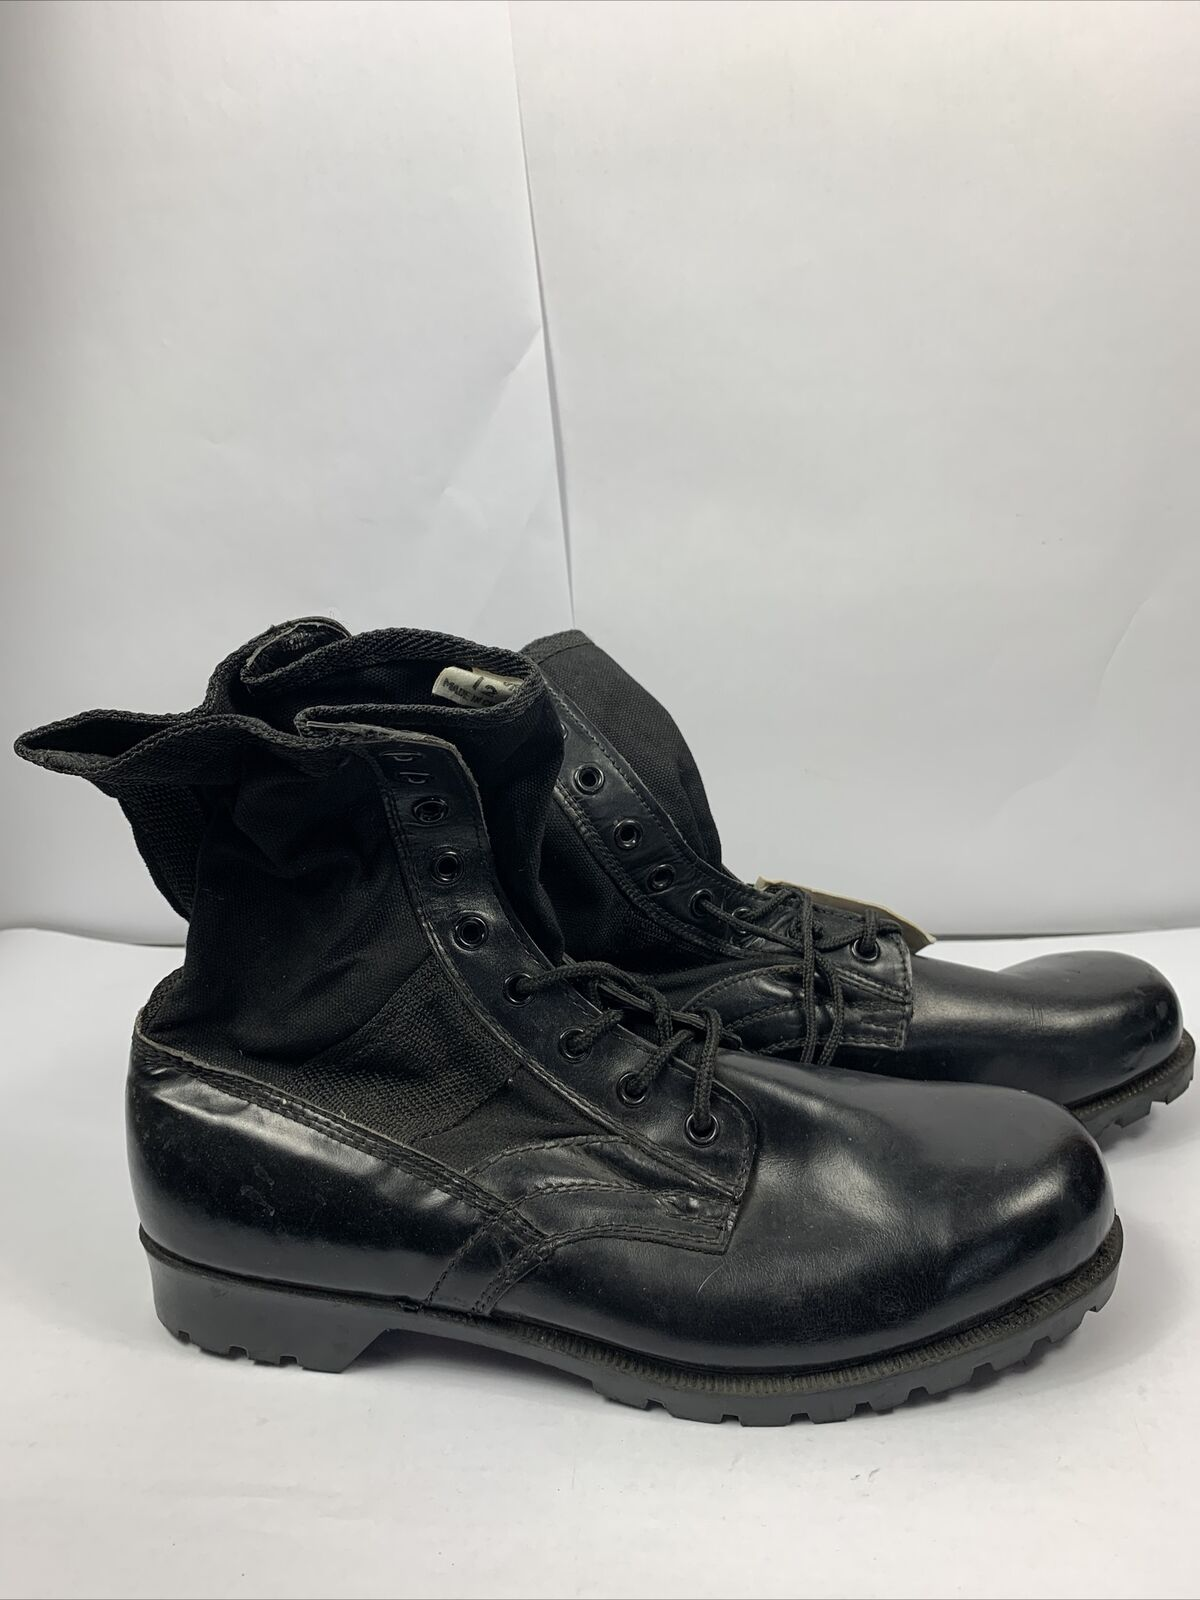 Texsport US ARMY Black Tropical COMBAT Boots Mens Size 12 New NWT